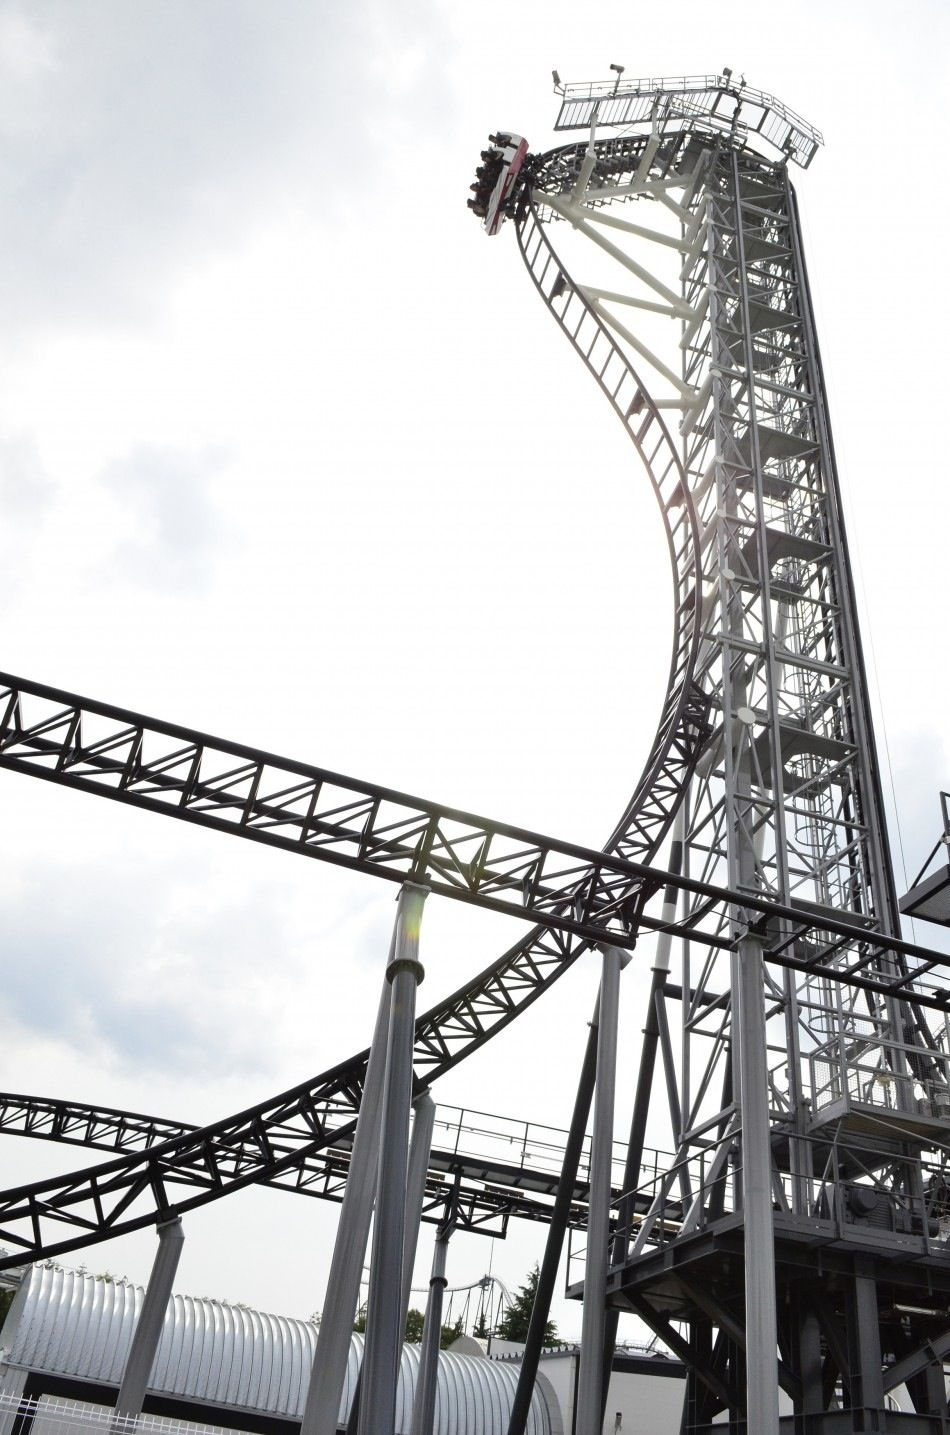 Takabisha- the world's steepest roller coaster in Japan. 120 degree angle straight down 150 ft